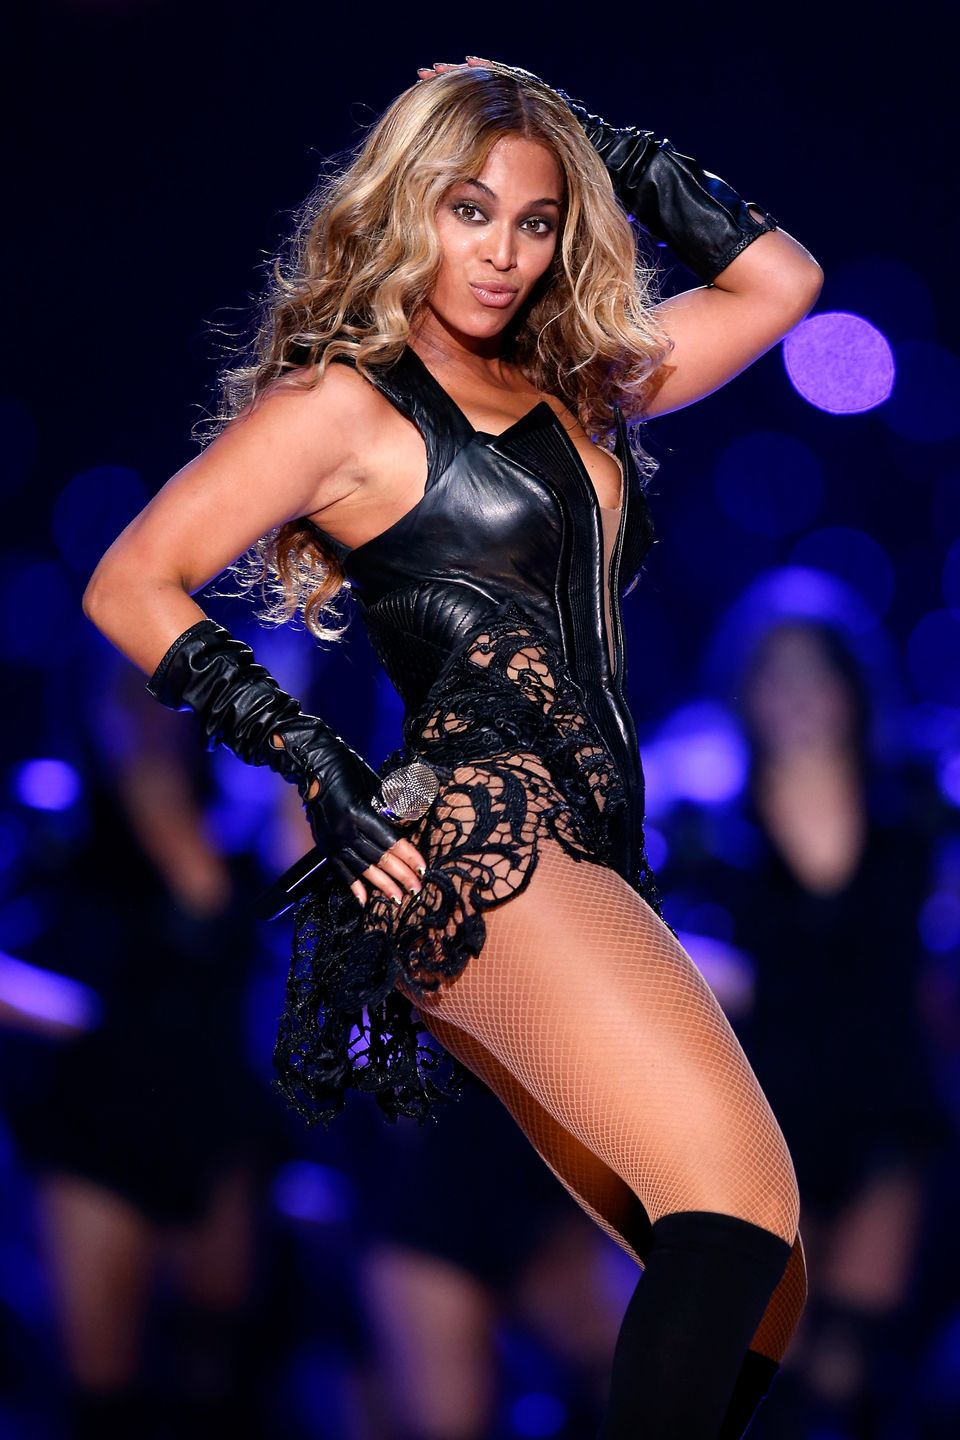 Beyonce lit up the stage during the Pepsi Super Bowl XLVII Halftime Show on February 3, 2013 in New Orleans, Louisiana.